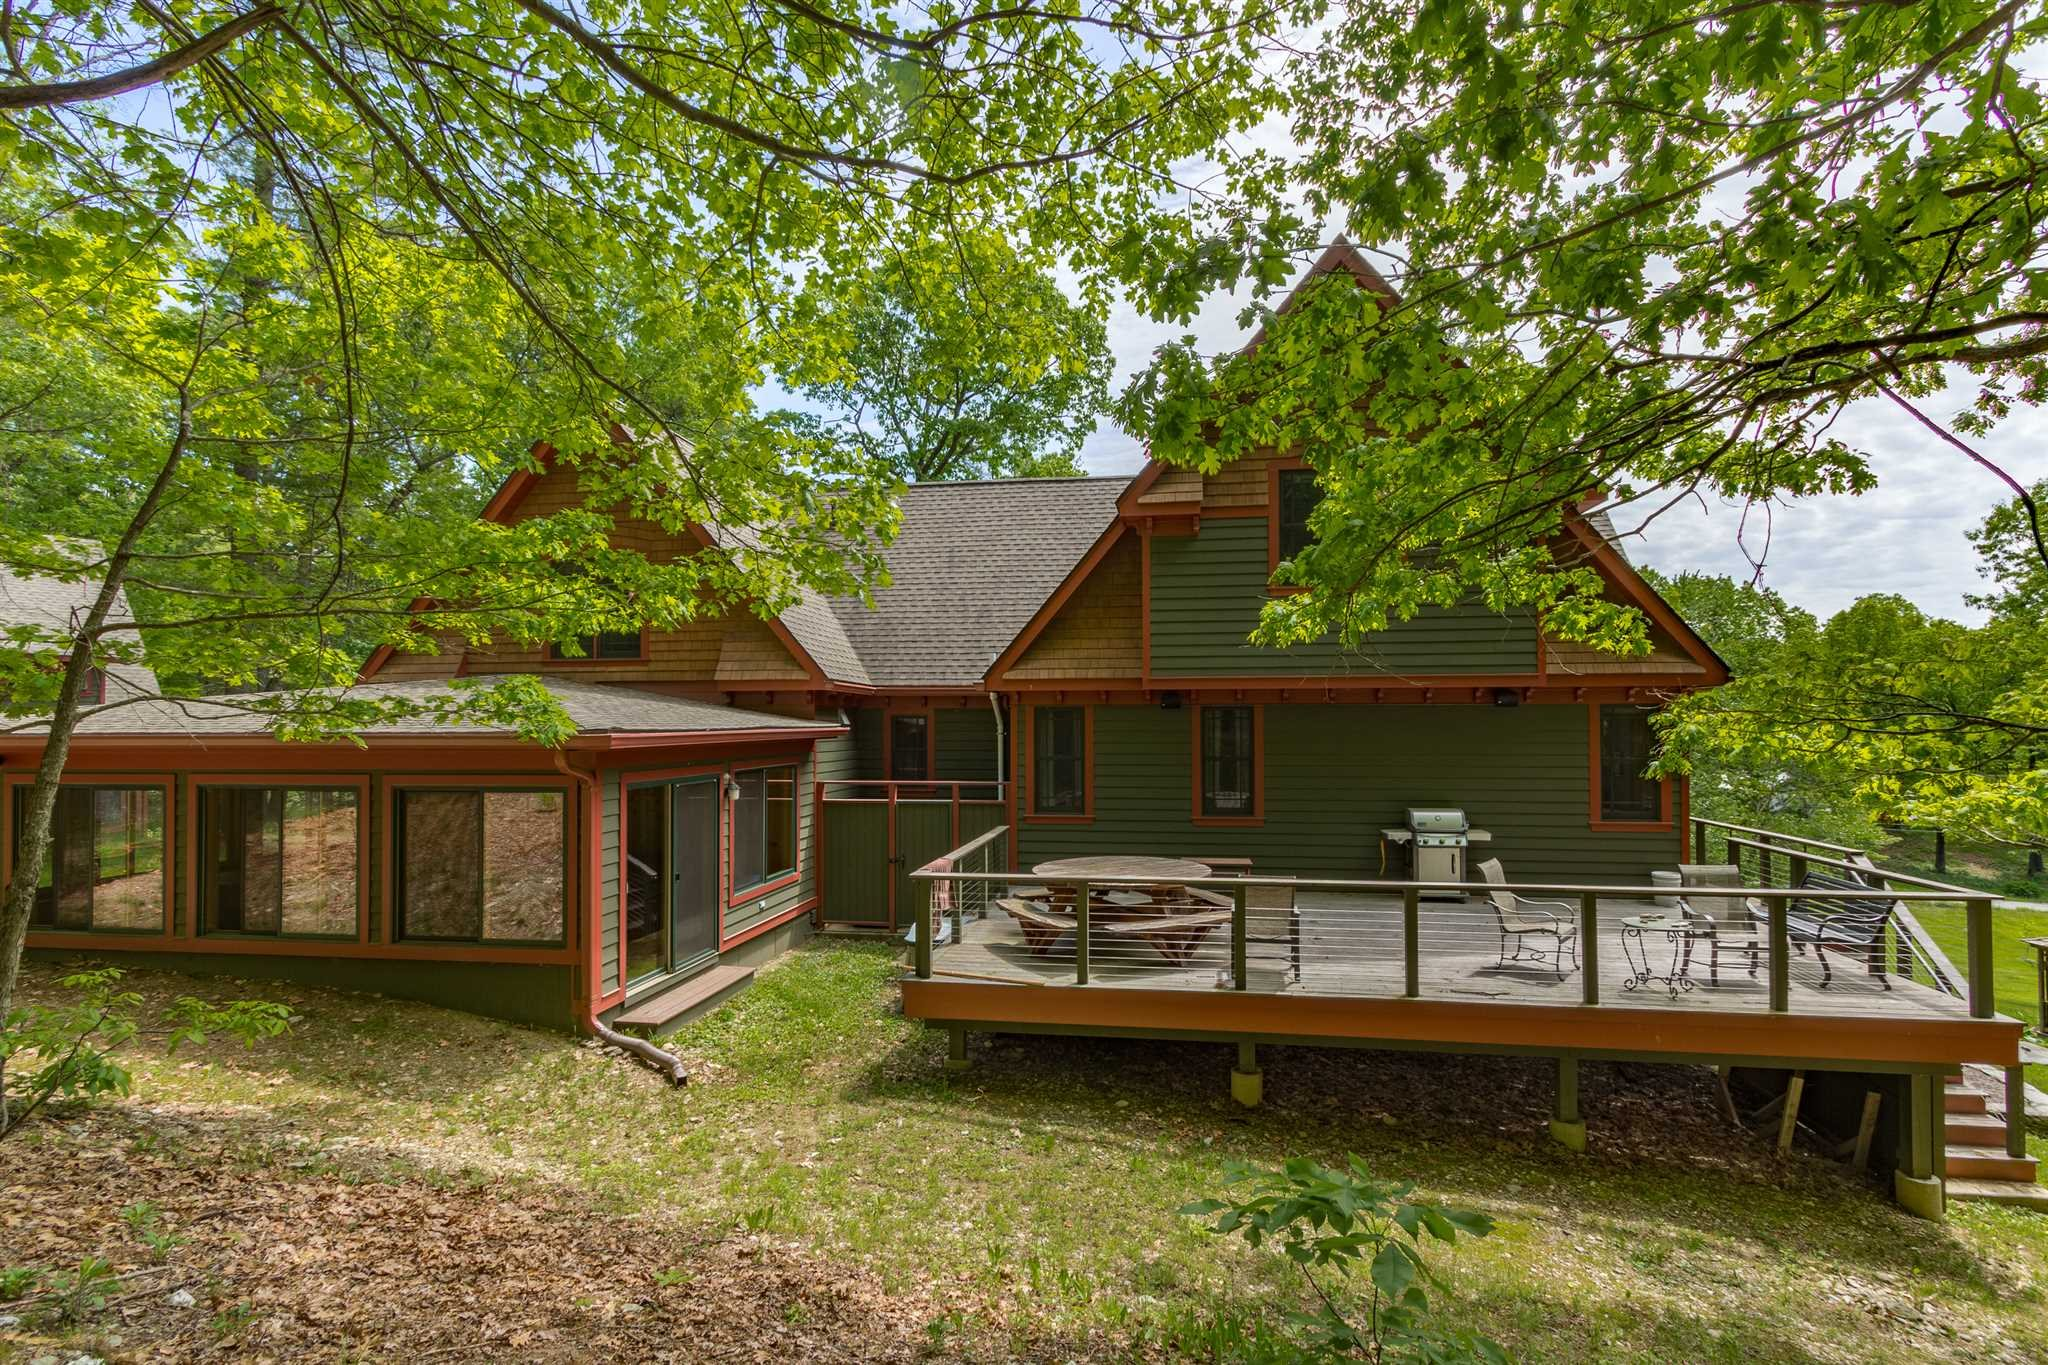 Additional photo for property listing at 15 OLD FARM Road 15 OLD FARM Road Rhinebeck, New York 12572 United States